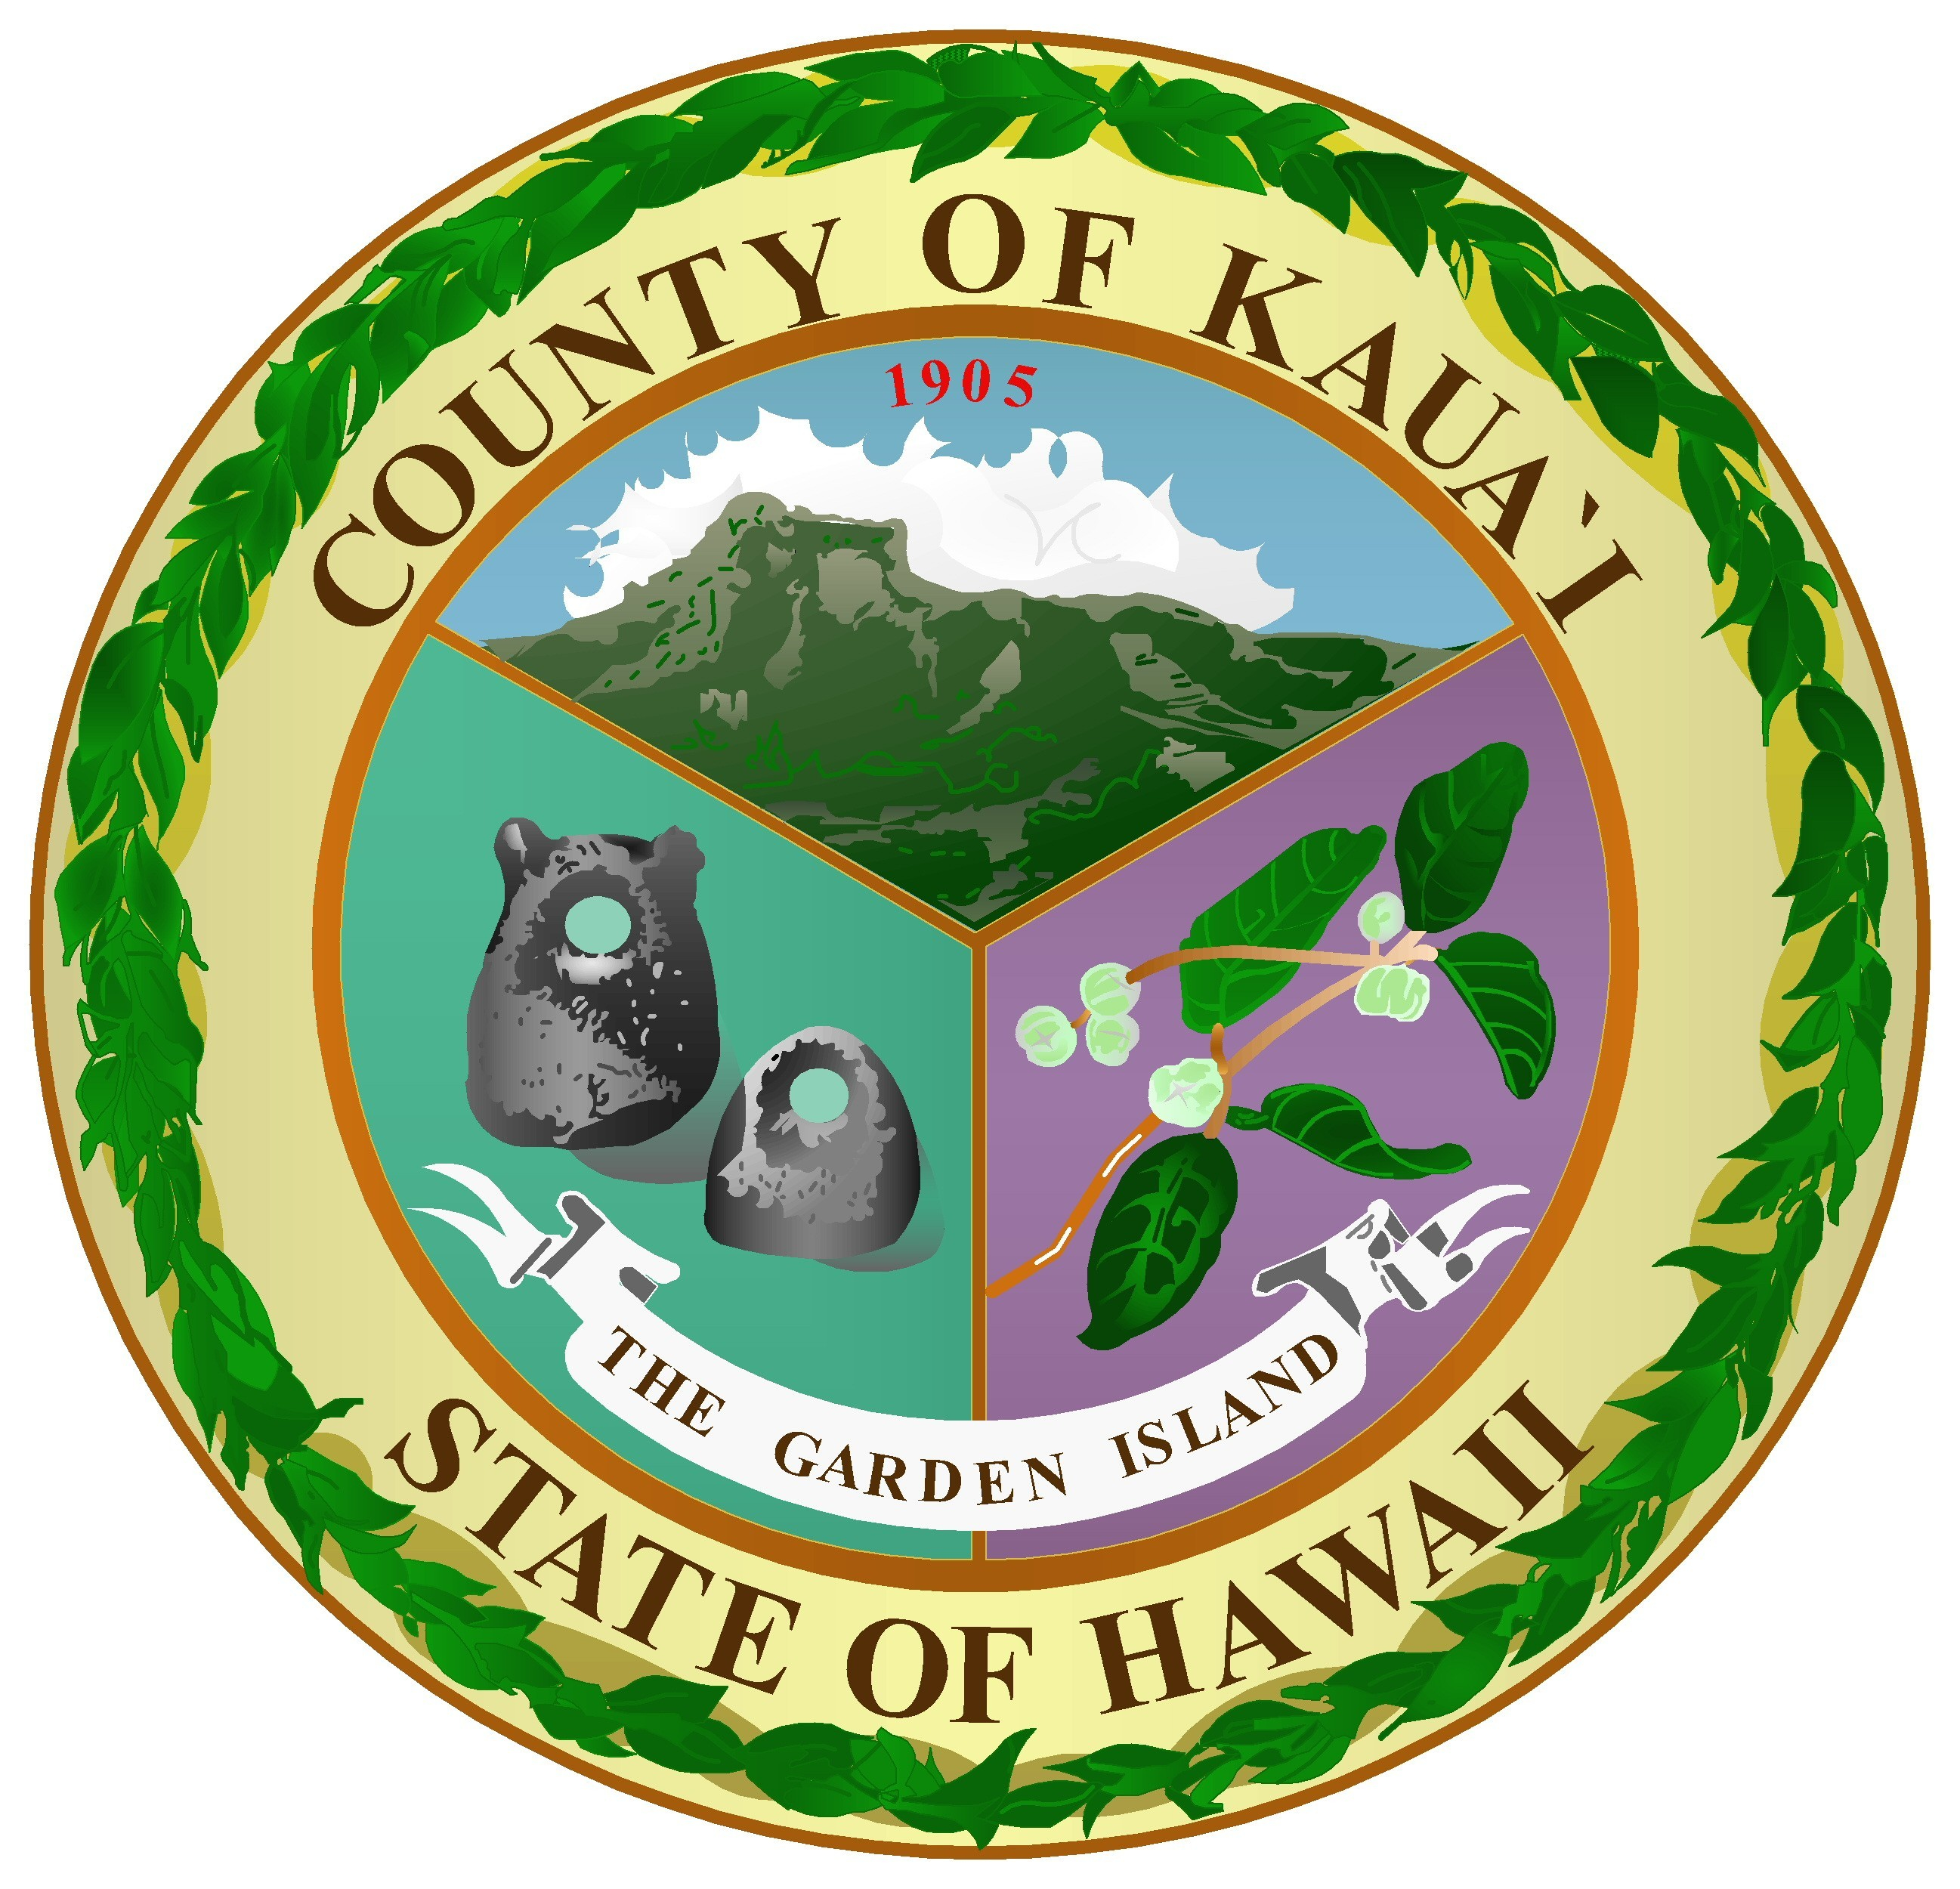 County of Kauaʻi